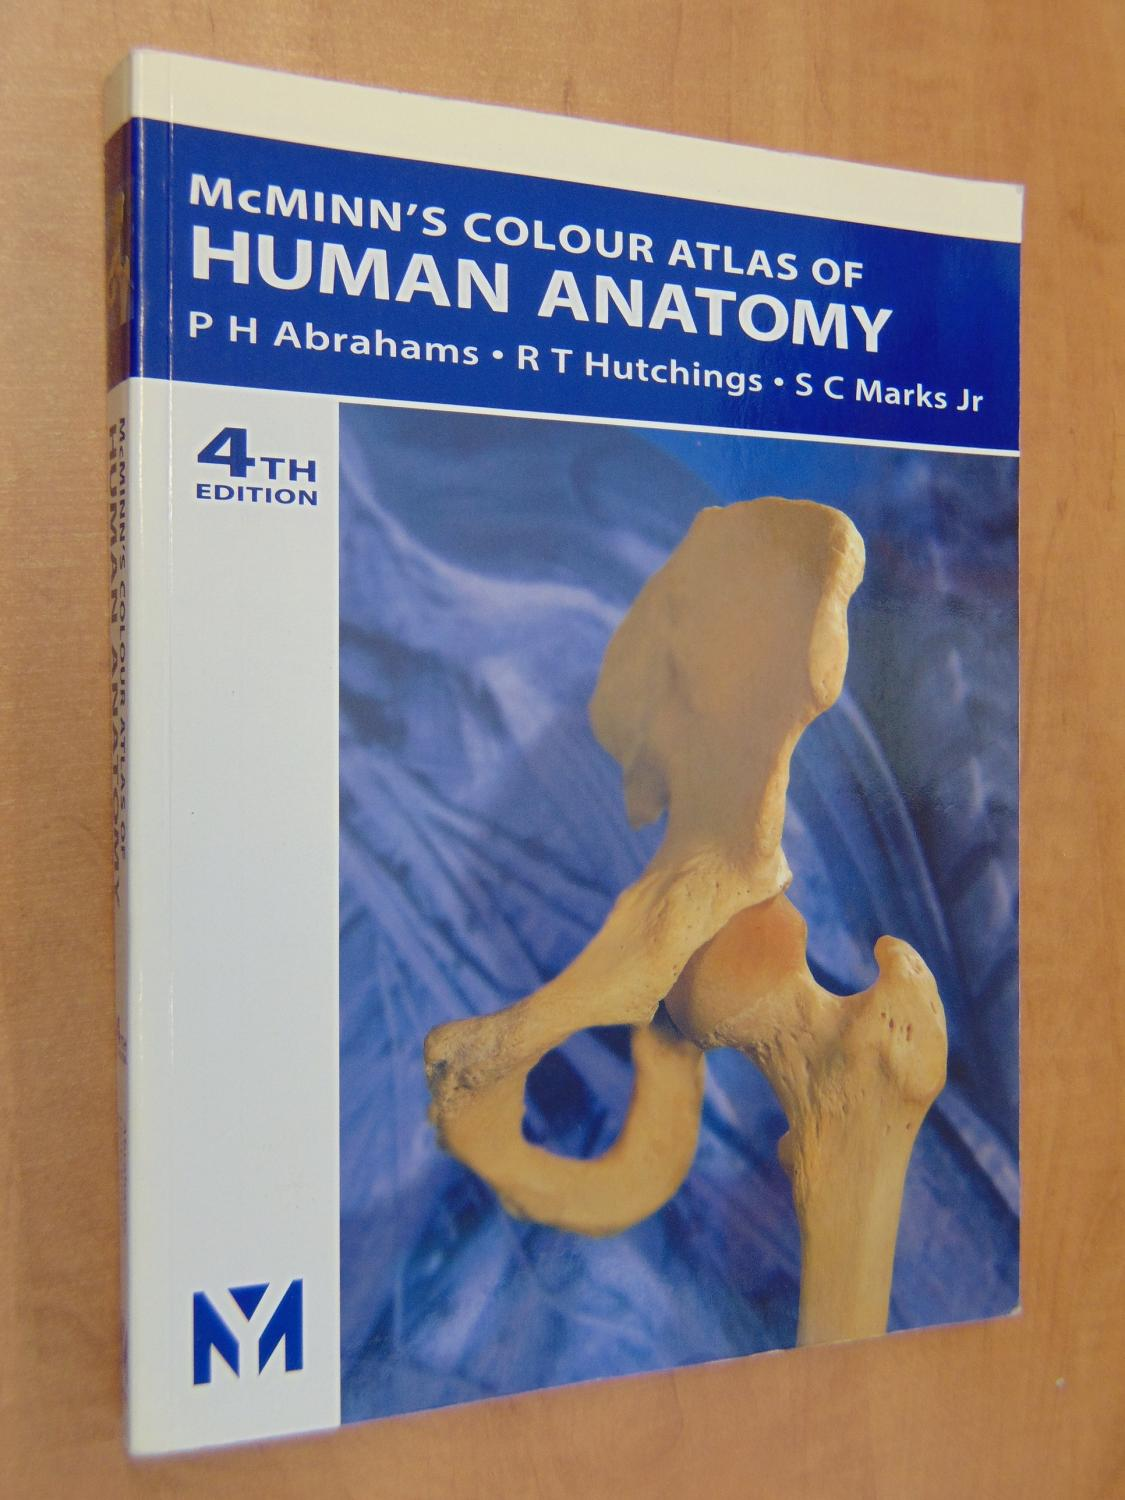 Color Atlas Human Anatomy - AbeBooks